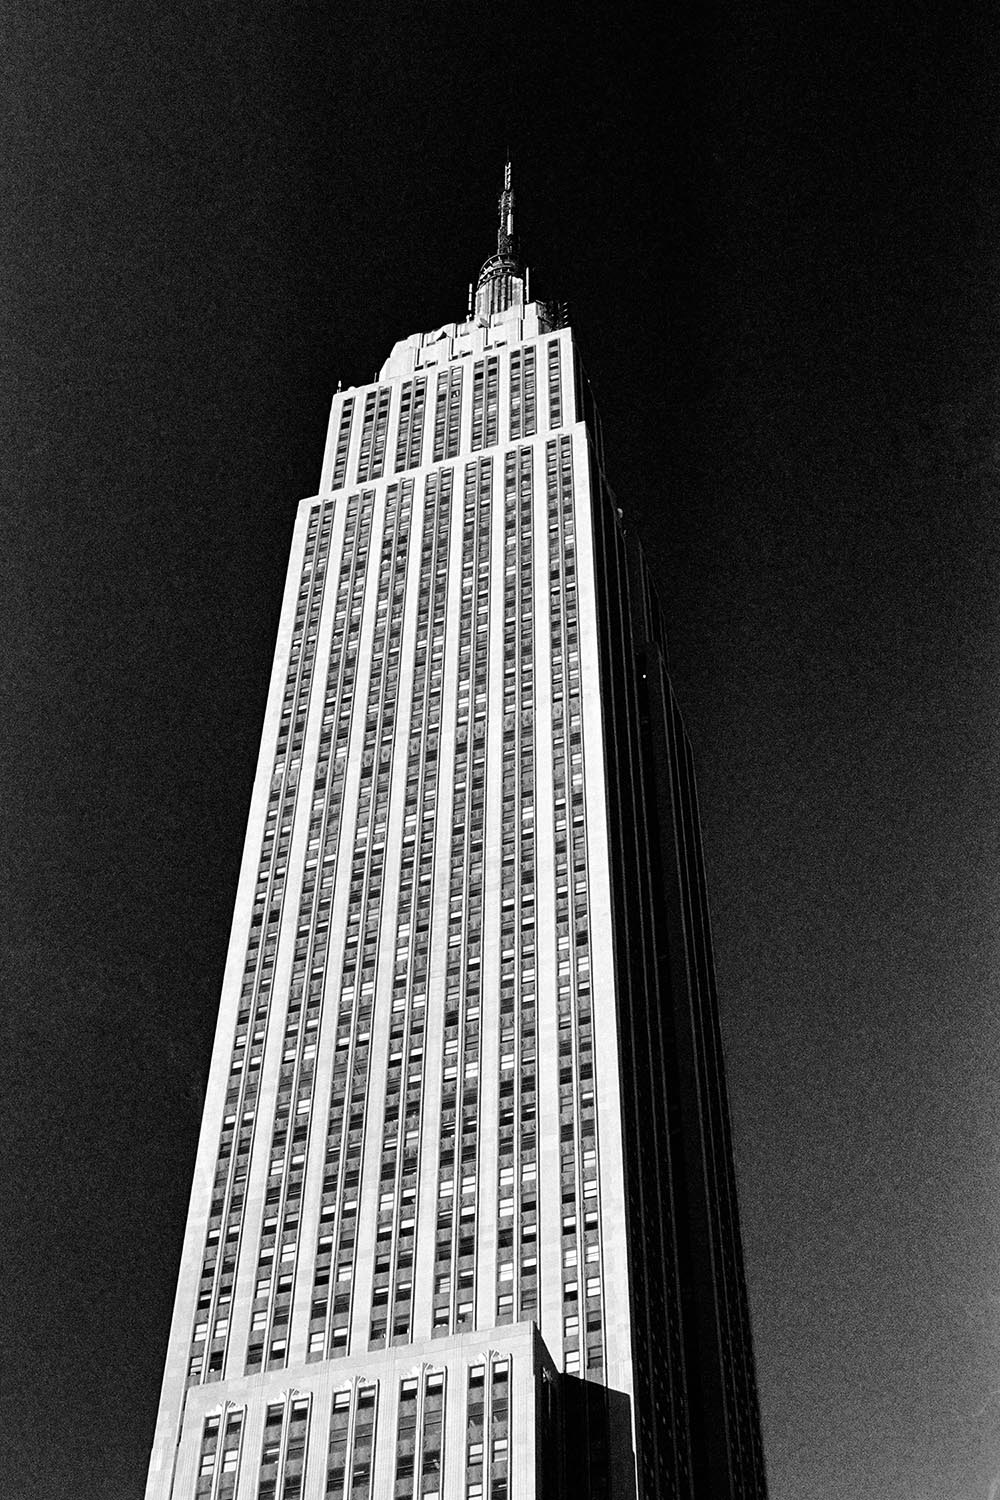 Black and white photograph of the Empire State Building set against a blackened, polarized sky.